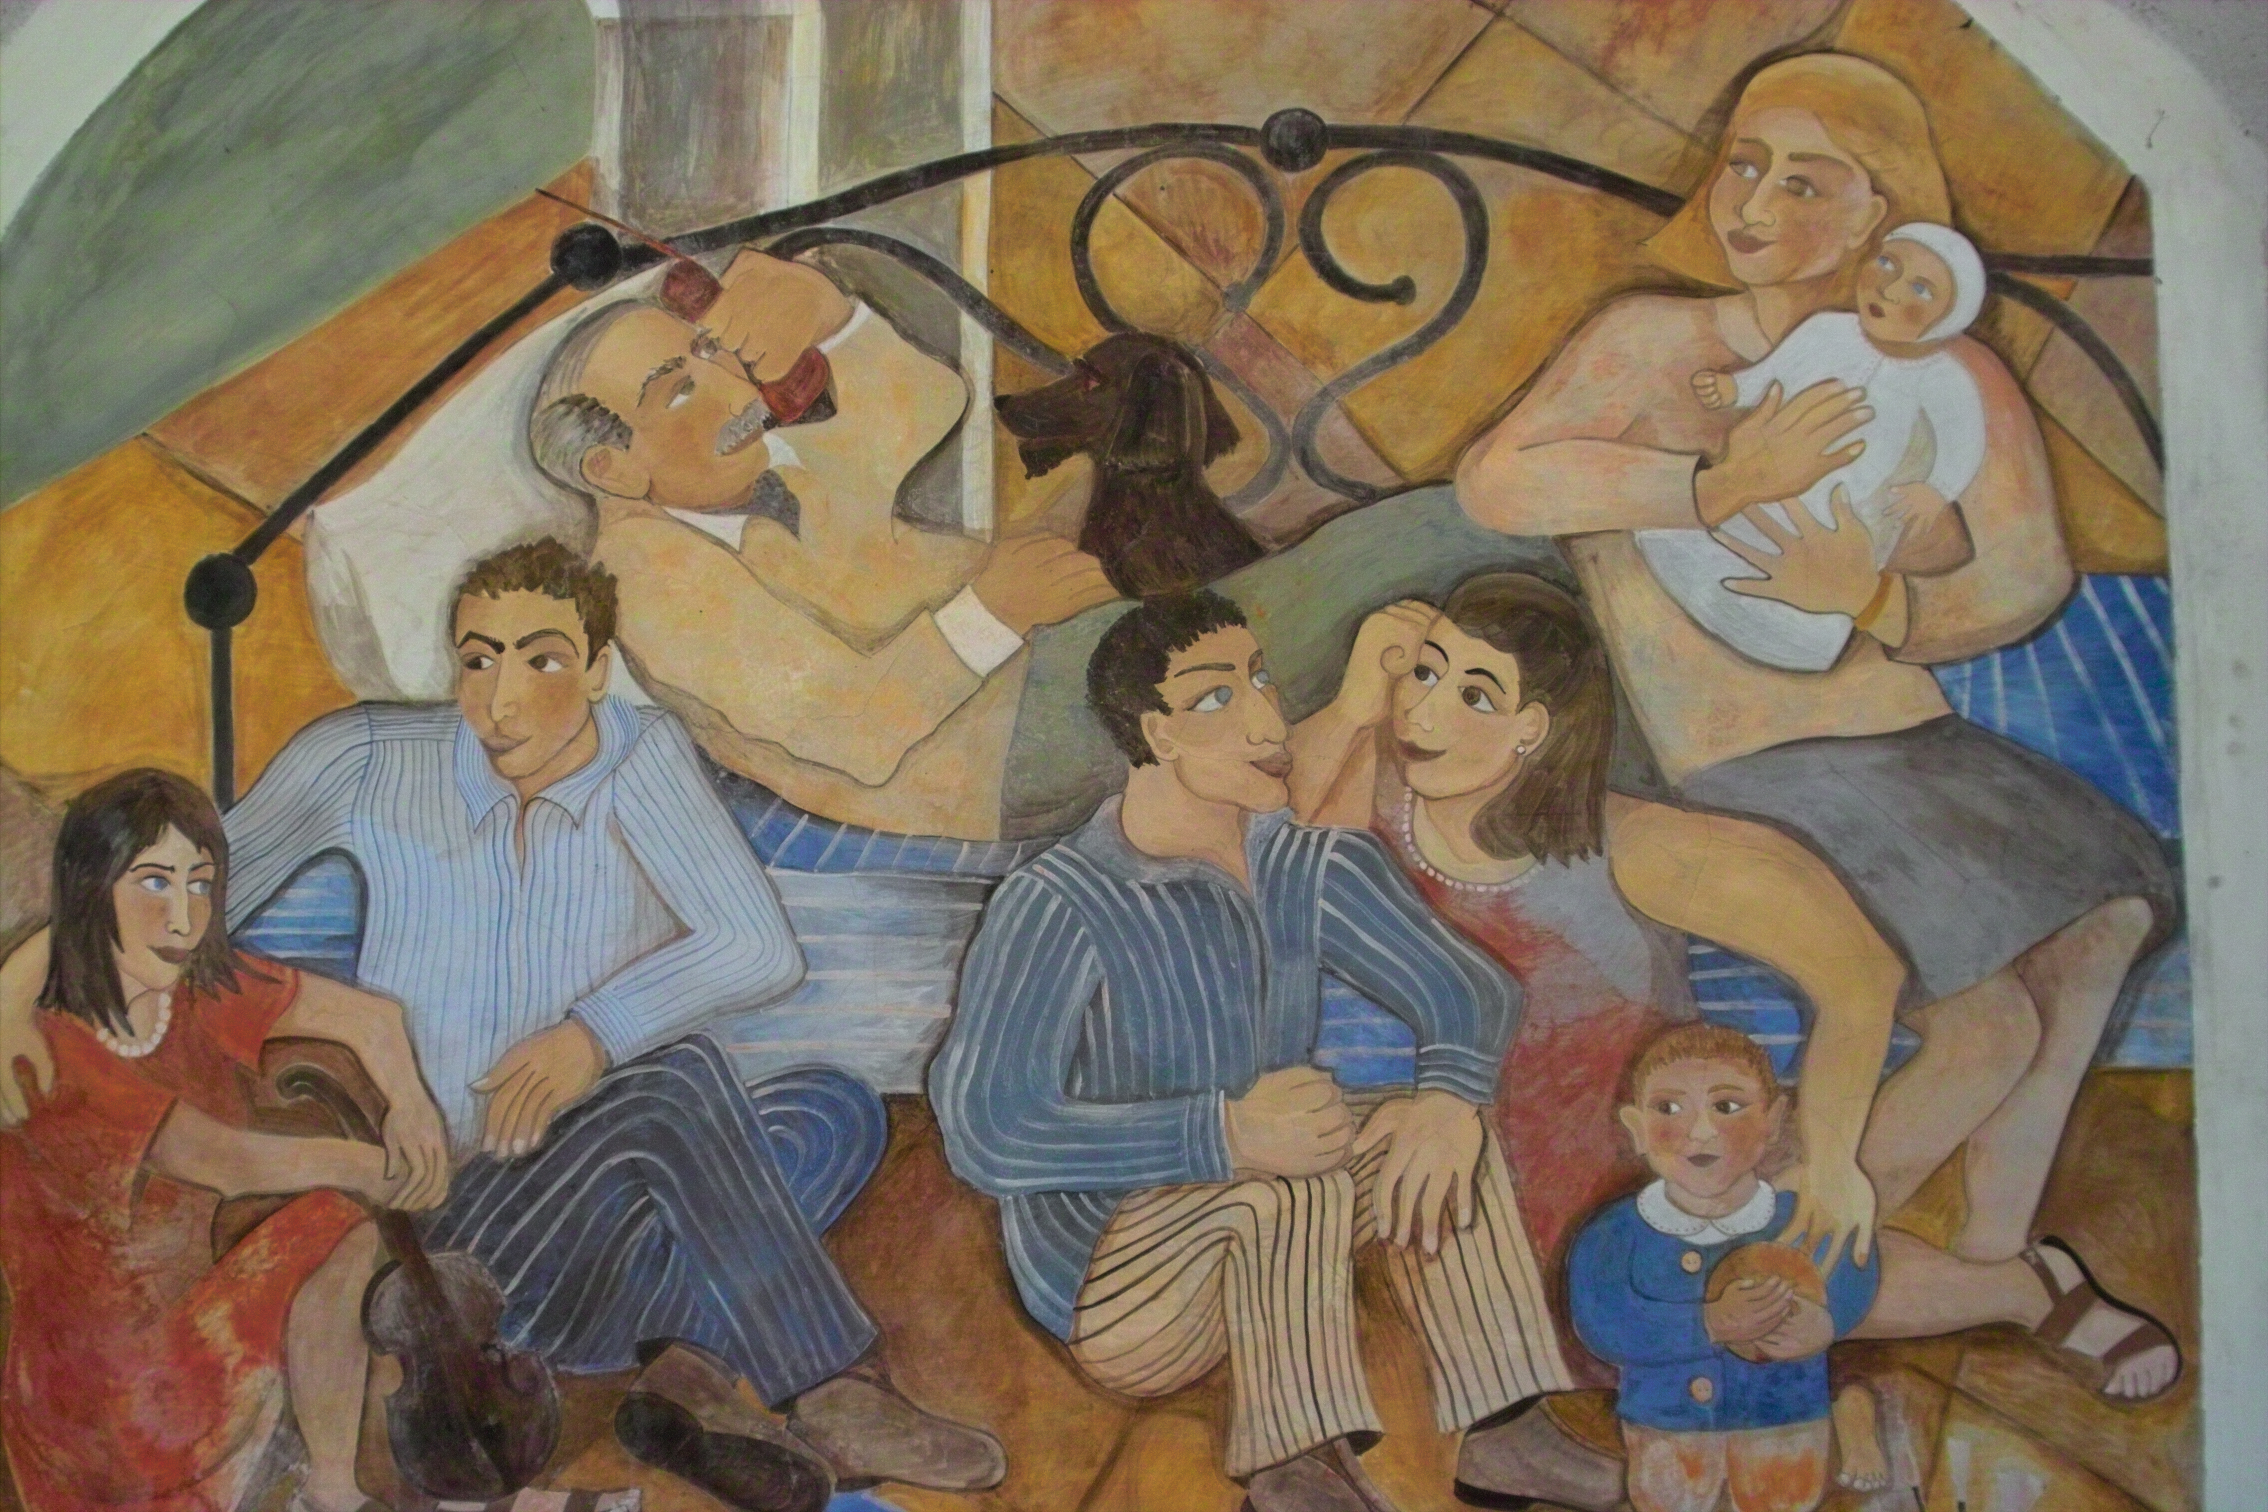 """Family Fresco"", fresco on stone wall, 10'x10', 1996, Sparone, Italy"